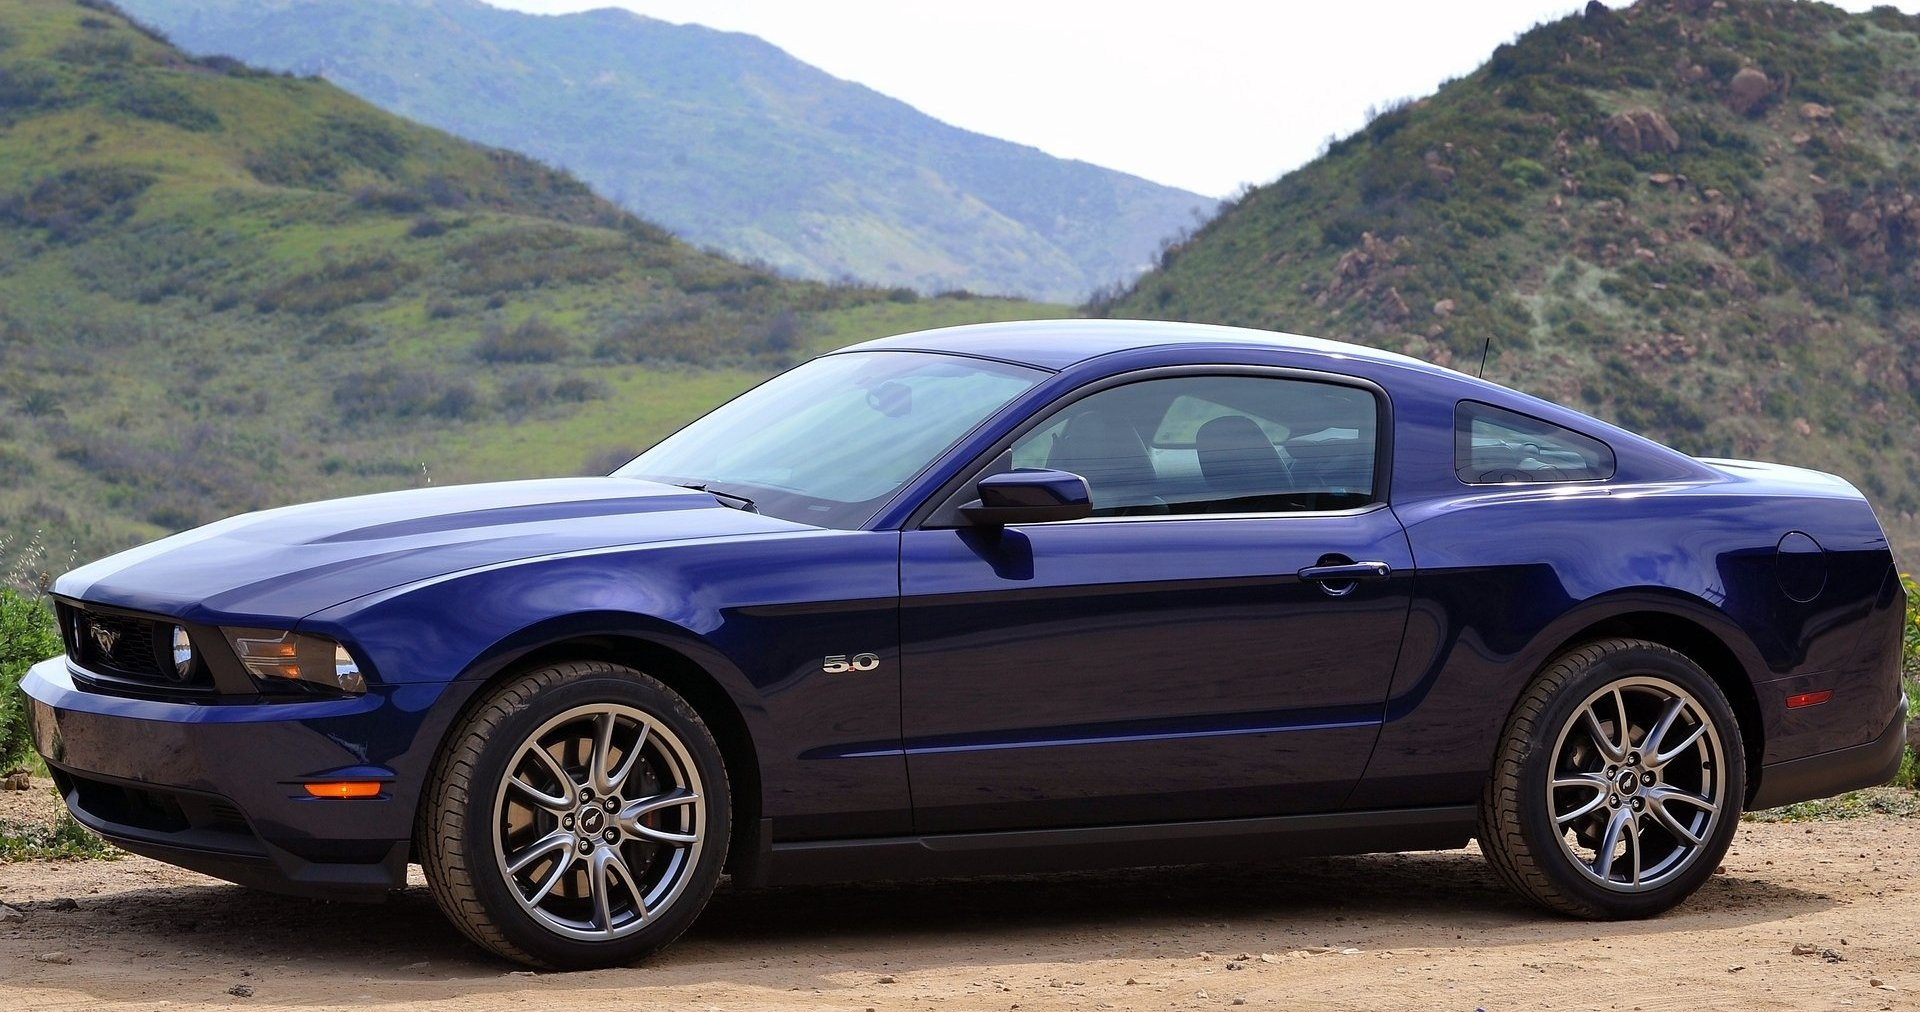 2011 Ford Mustang The Original American Sports Car